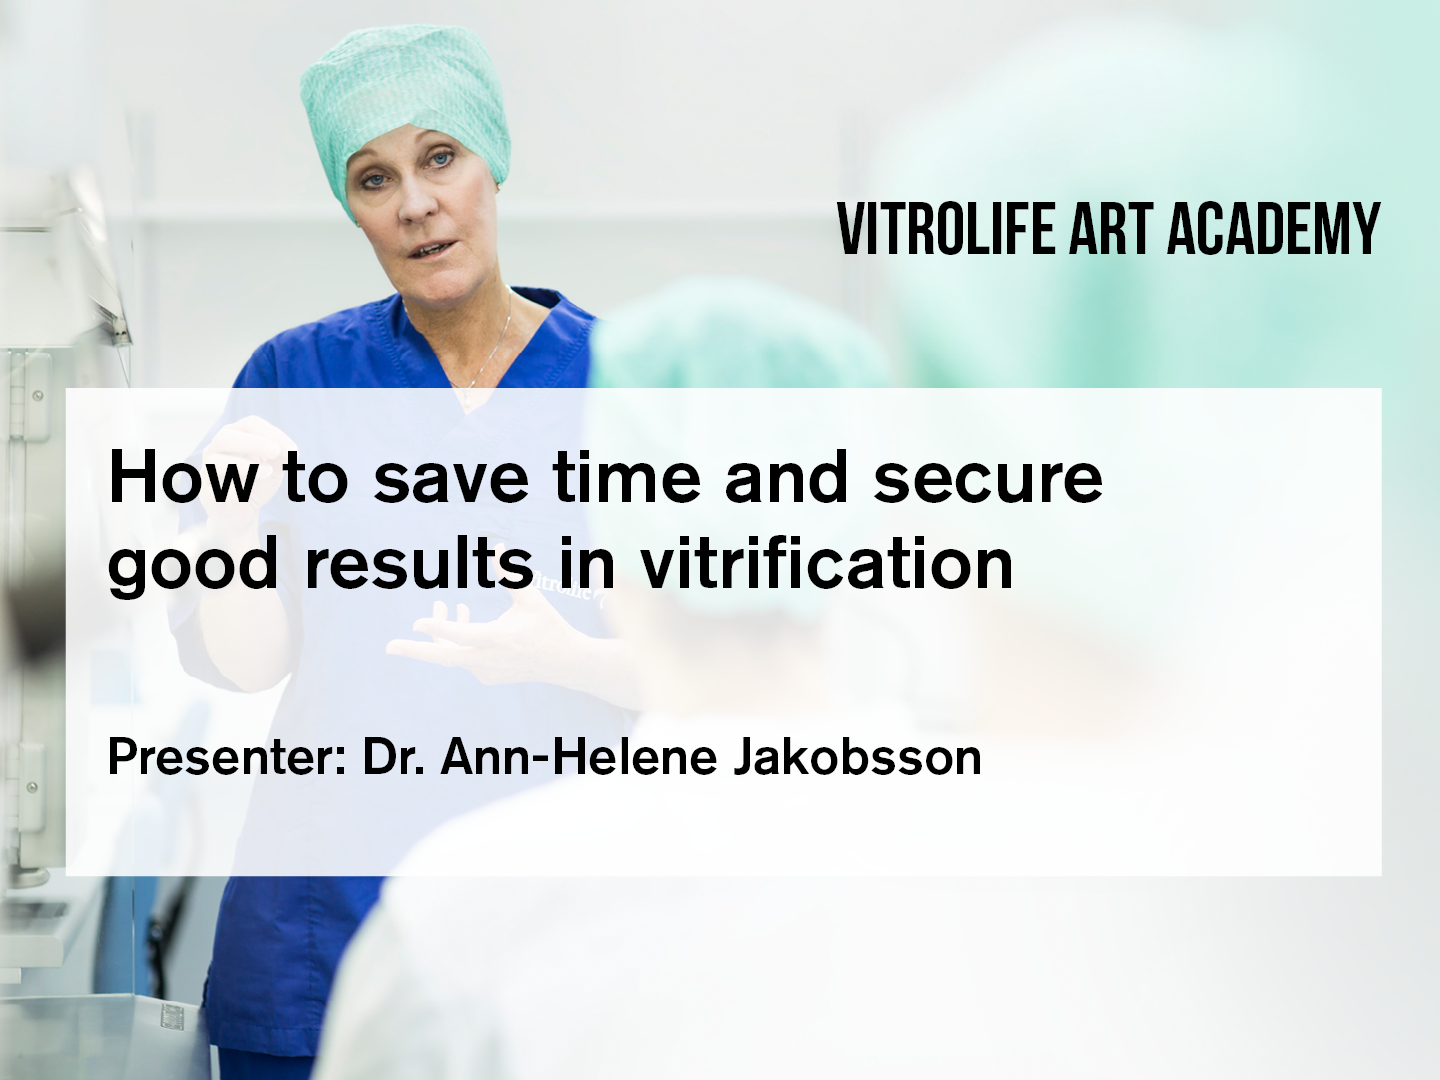 How to save time and secure good results in vitrification_blog.png